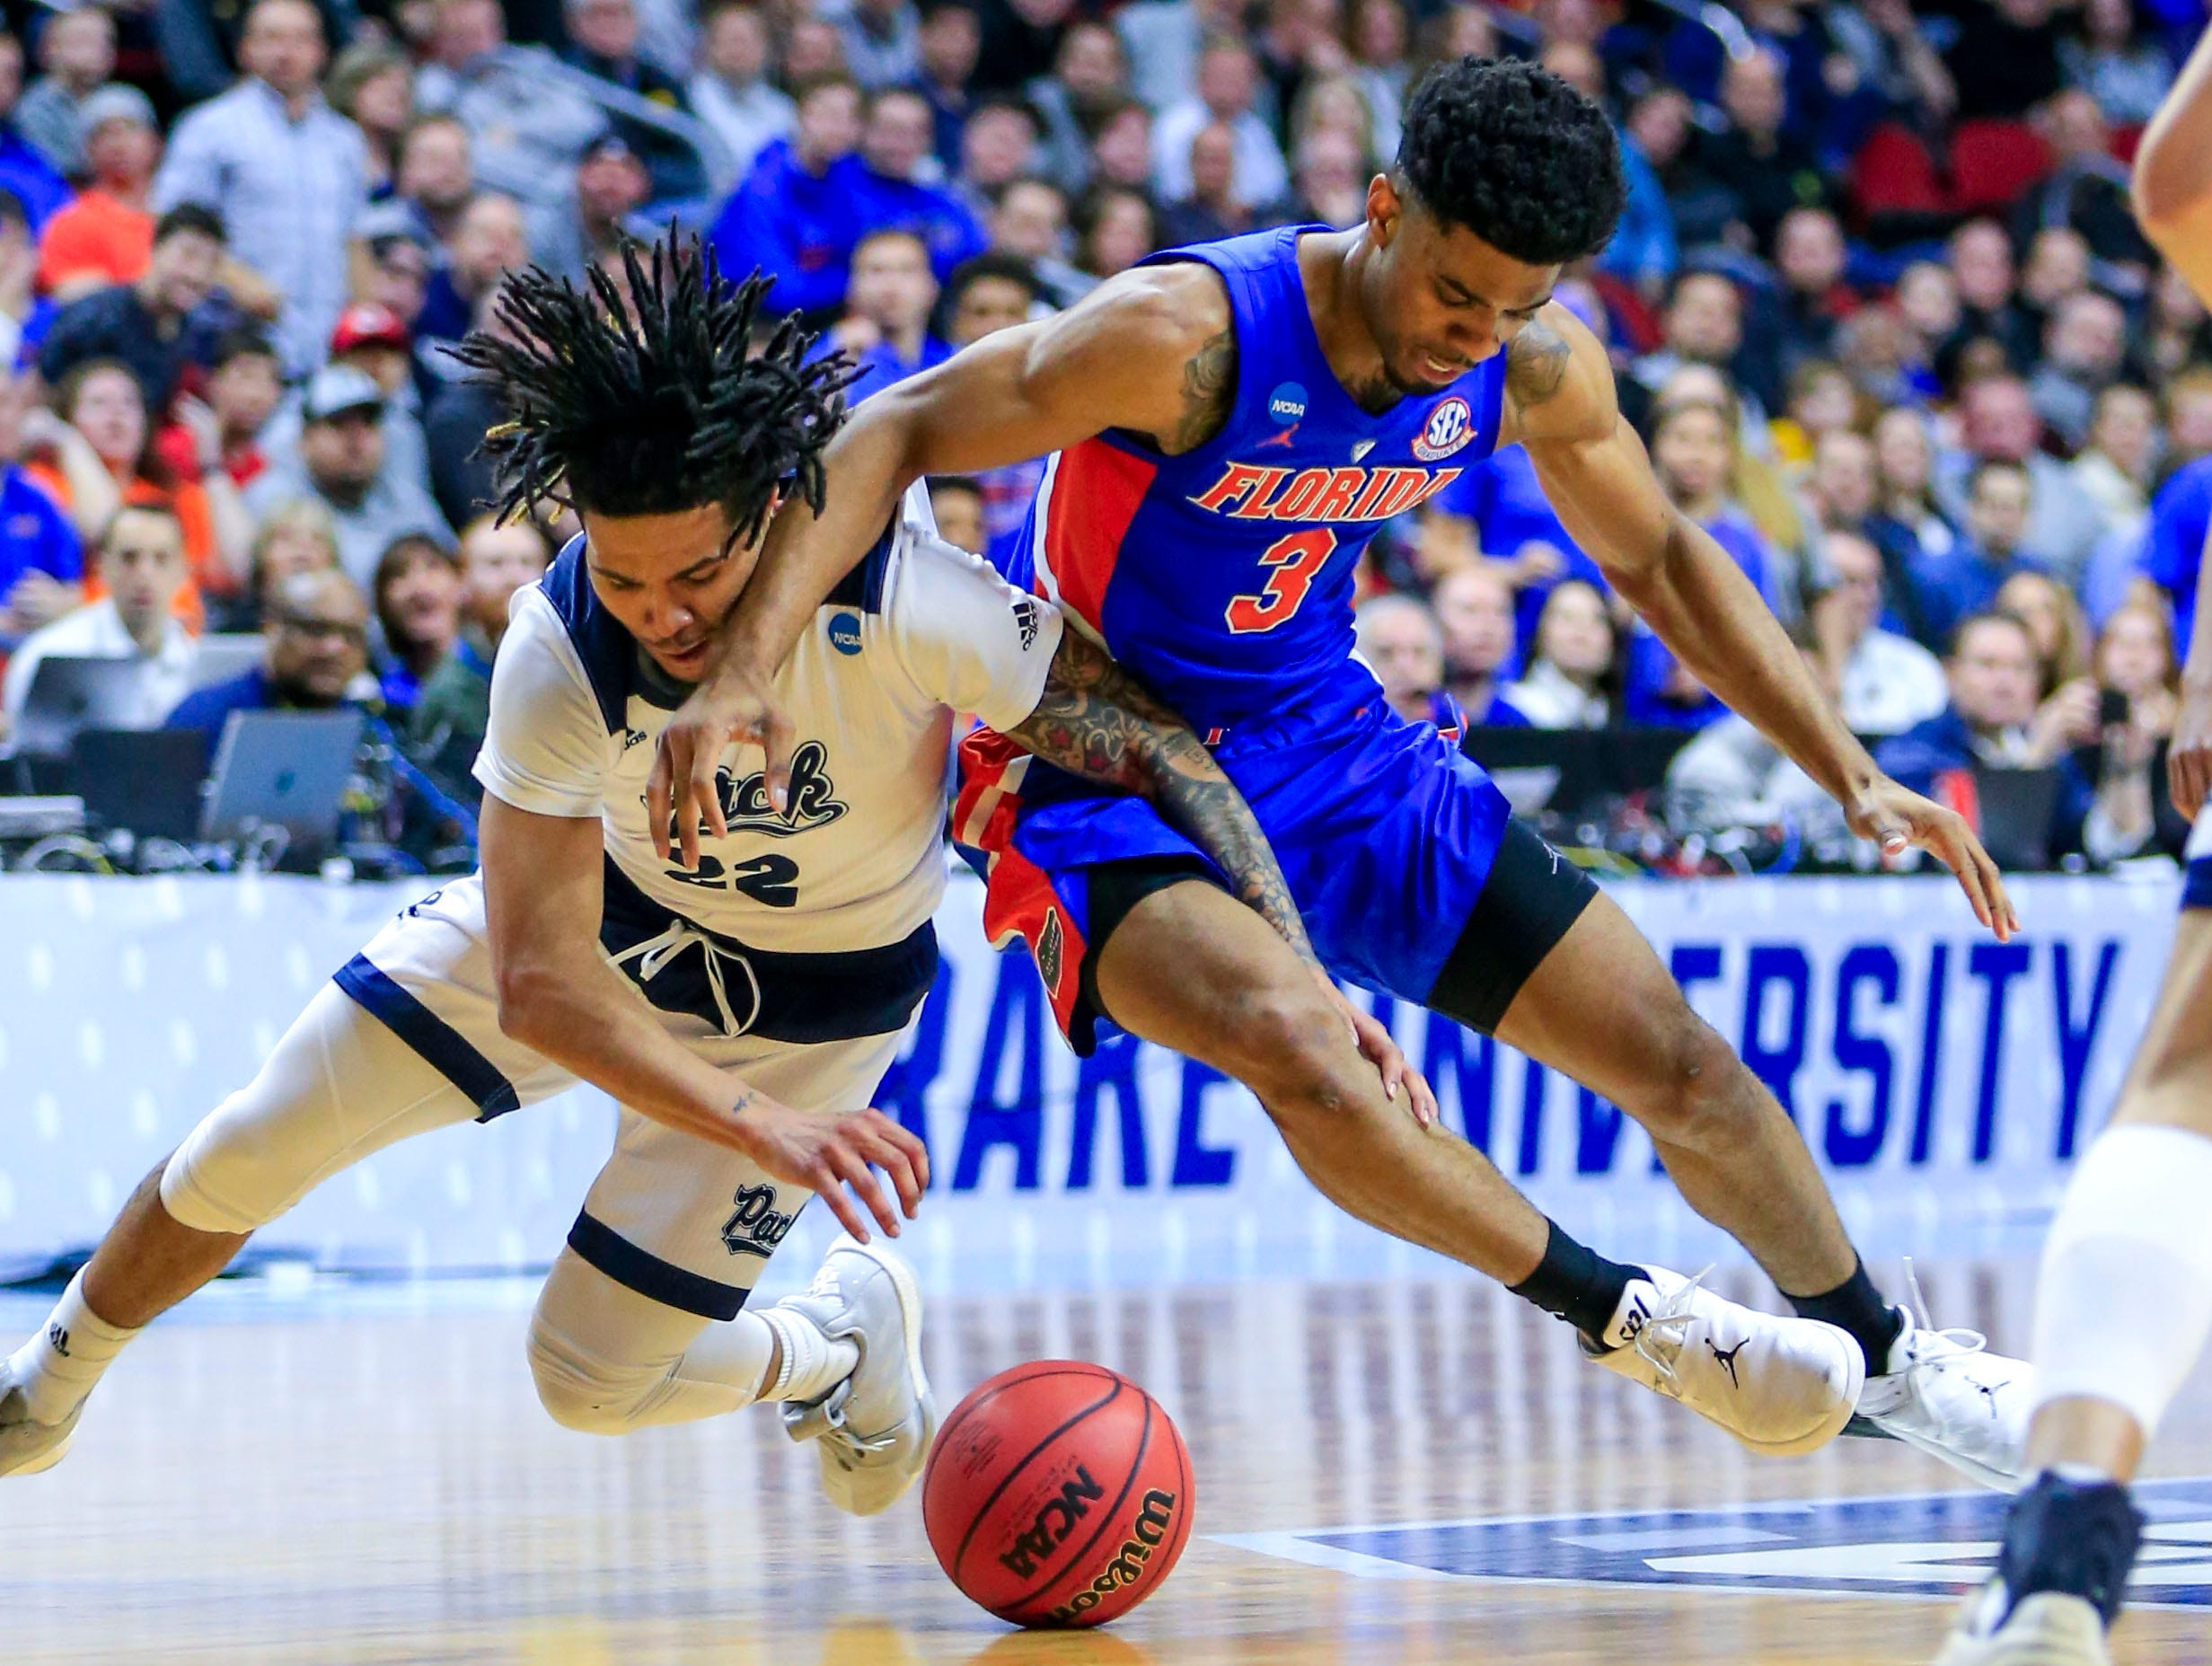 Nevada guard Jazz Johnson and Florida guard Jalen Hudson fight for the ball during their NCAA Division I Men's Basketball Championship First Round game on Thursday, March 21, 2019 in Des Moines.